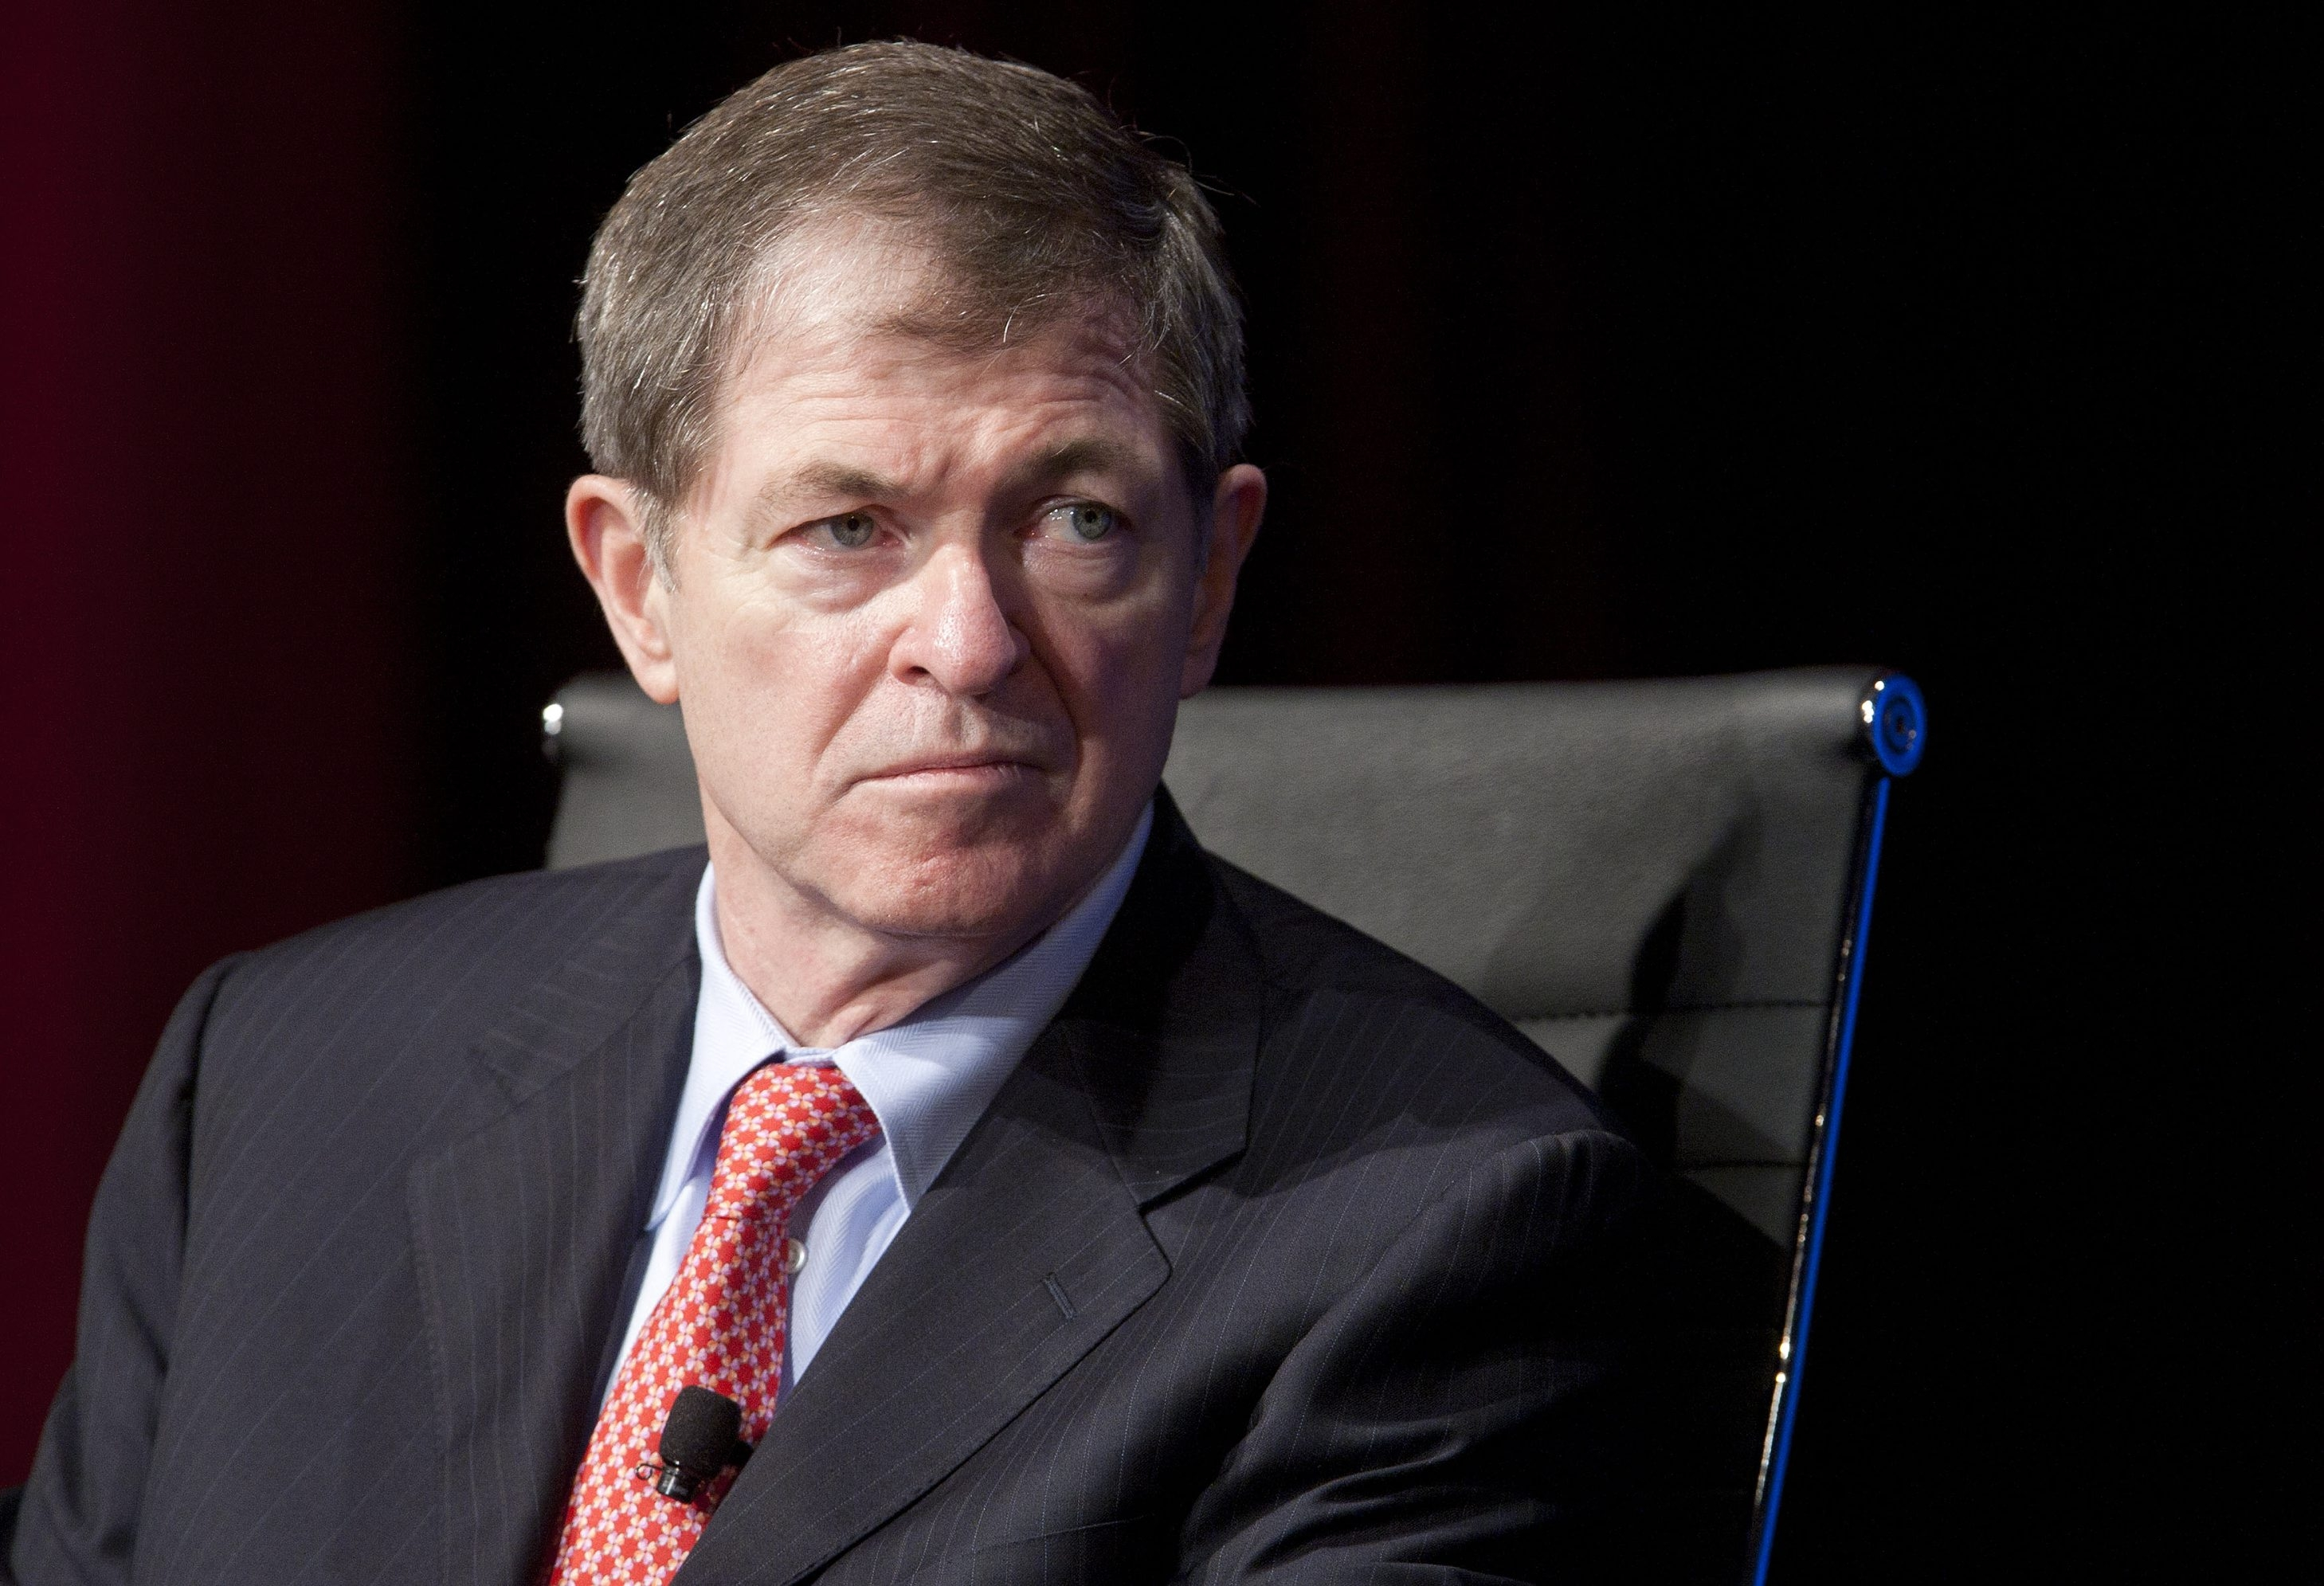 Mike Ullman is back as CEO after the ouster of Ron Johnson, whose reign saw the retailer suffer a 25 percent drop in sales in a single year.